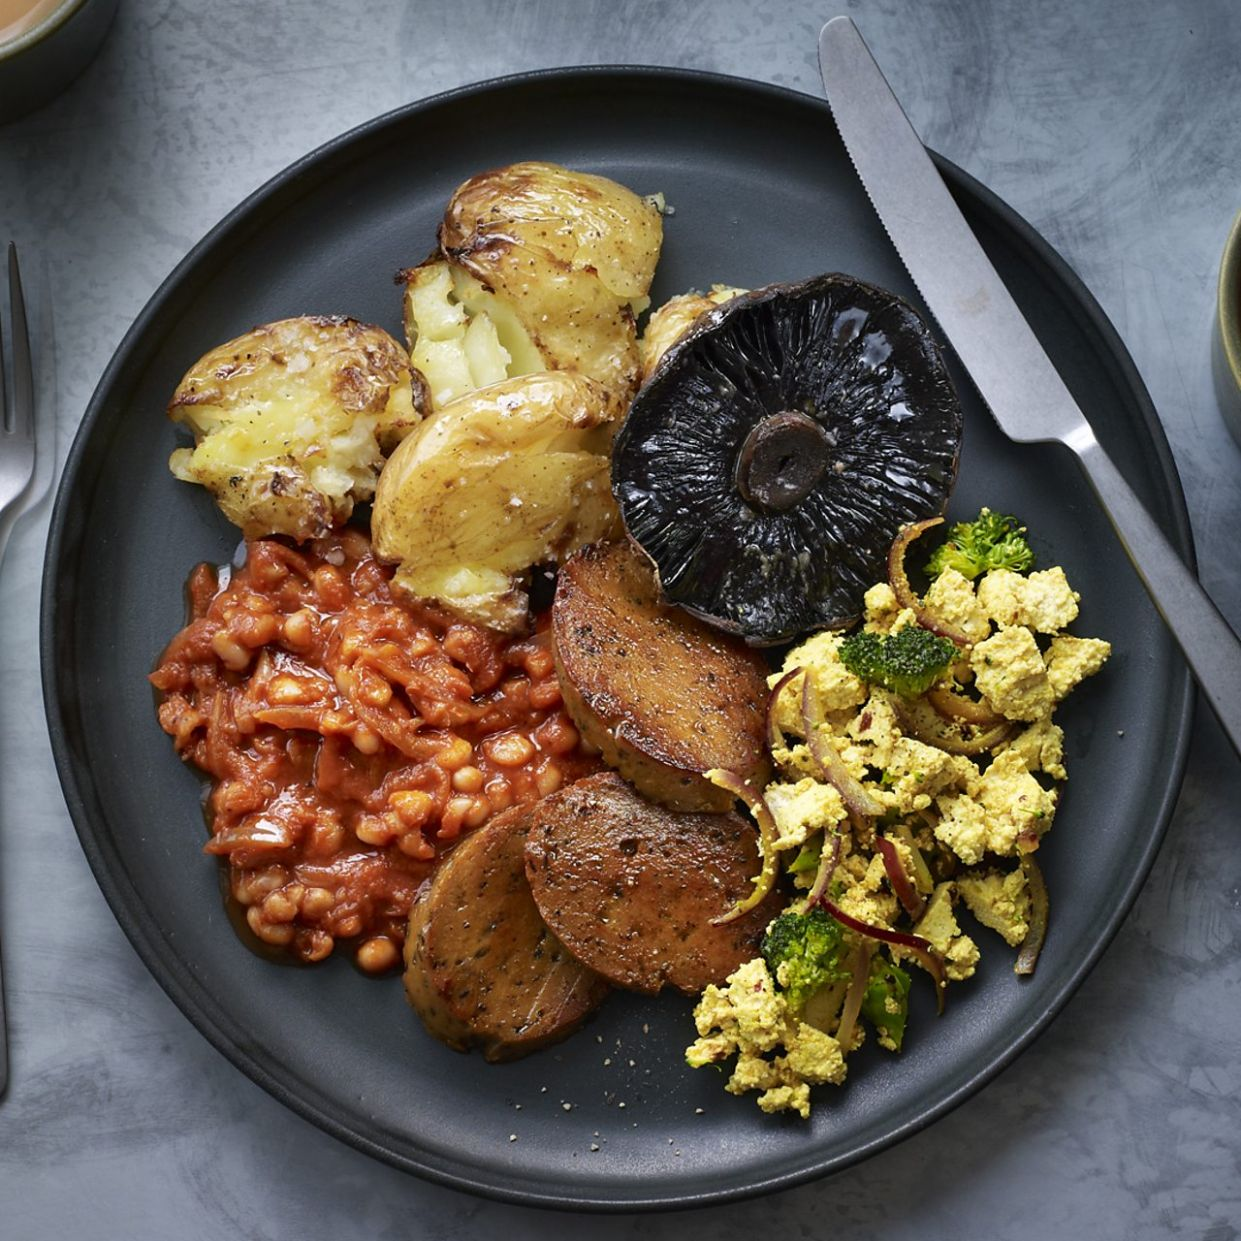 Vegan fried breakfast recipe - BBC Food